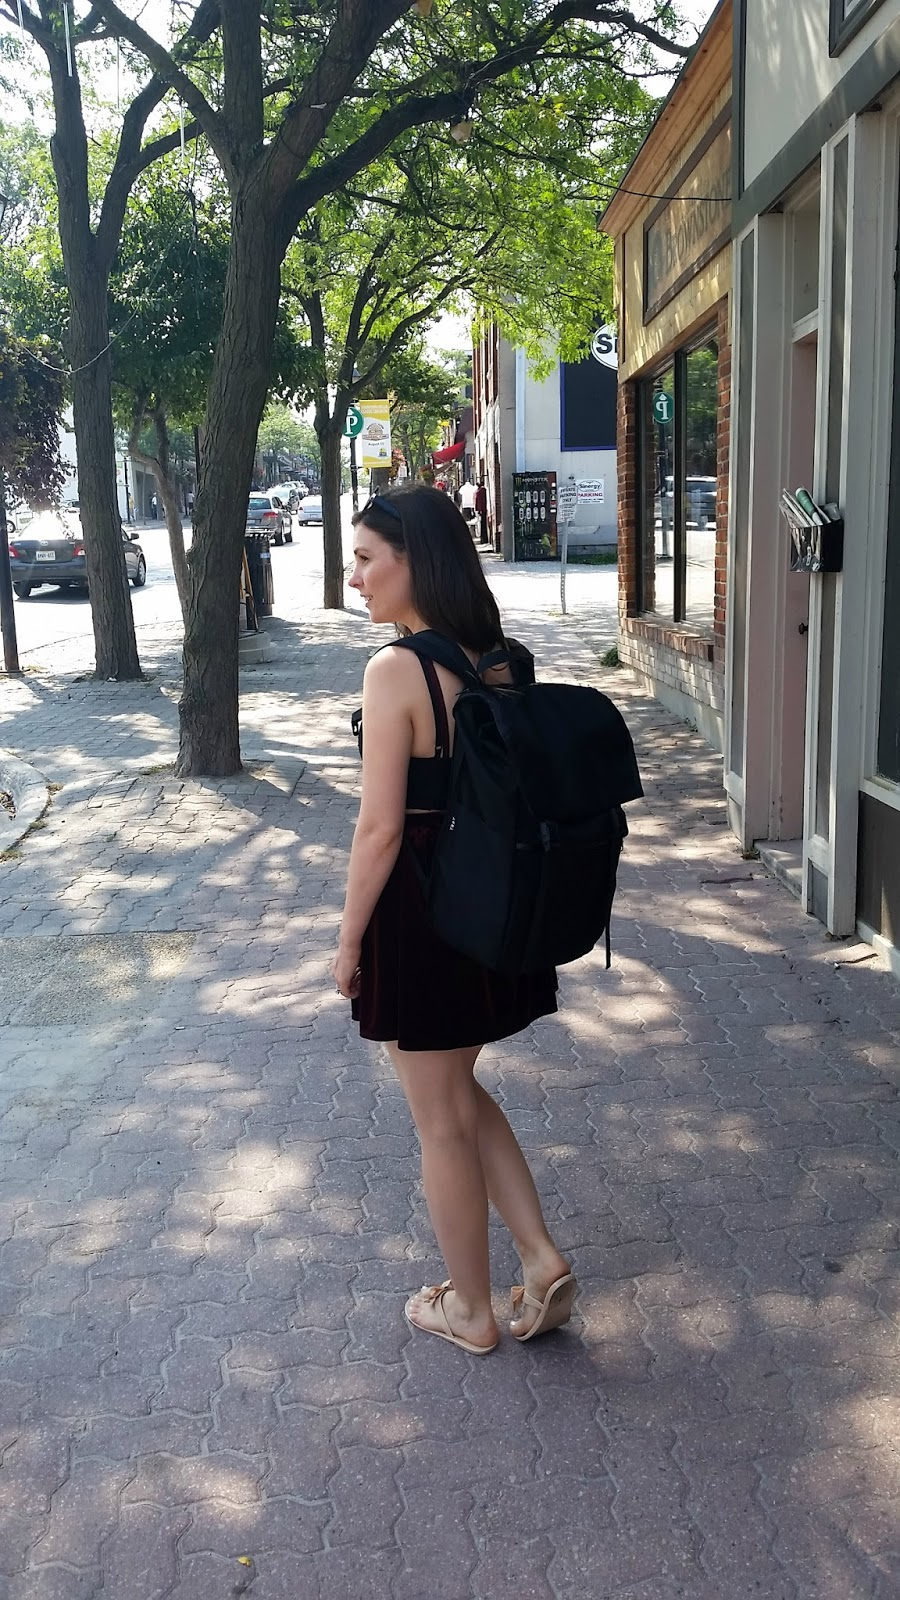 YNOT backpack, Forever 21 crop top and mini skirt, Topshop Sun Glasses